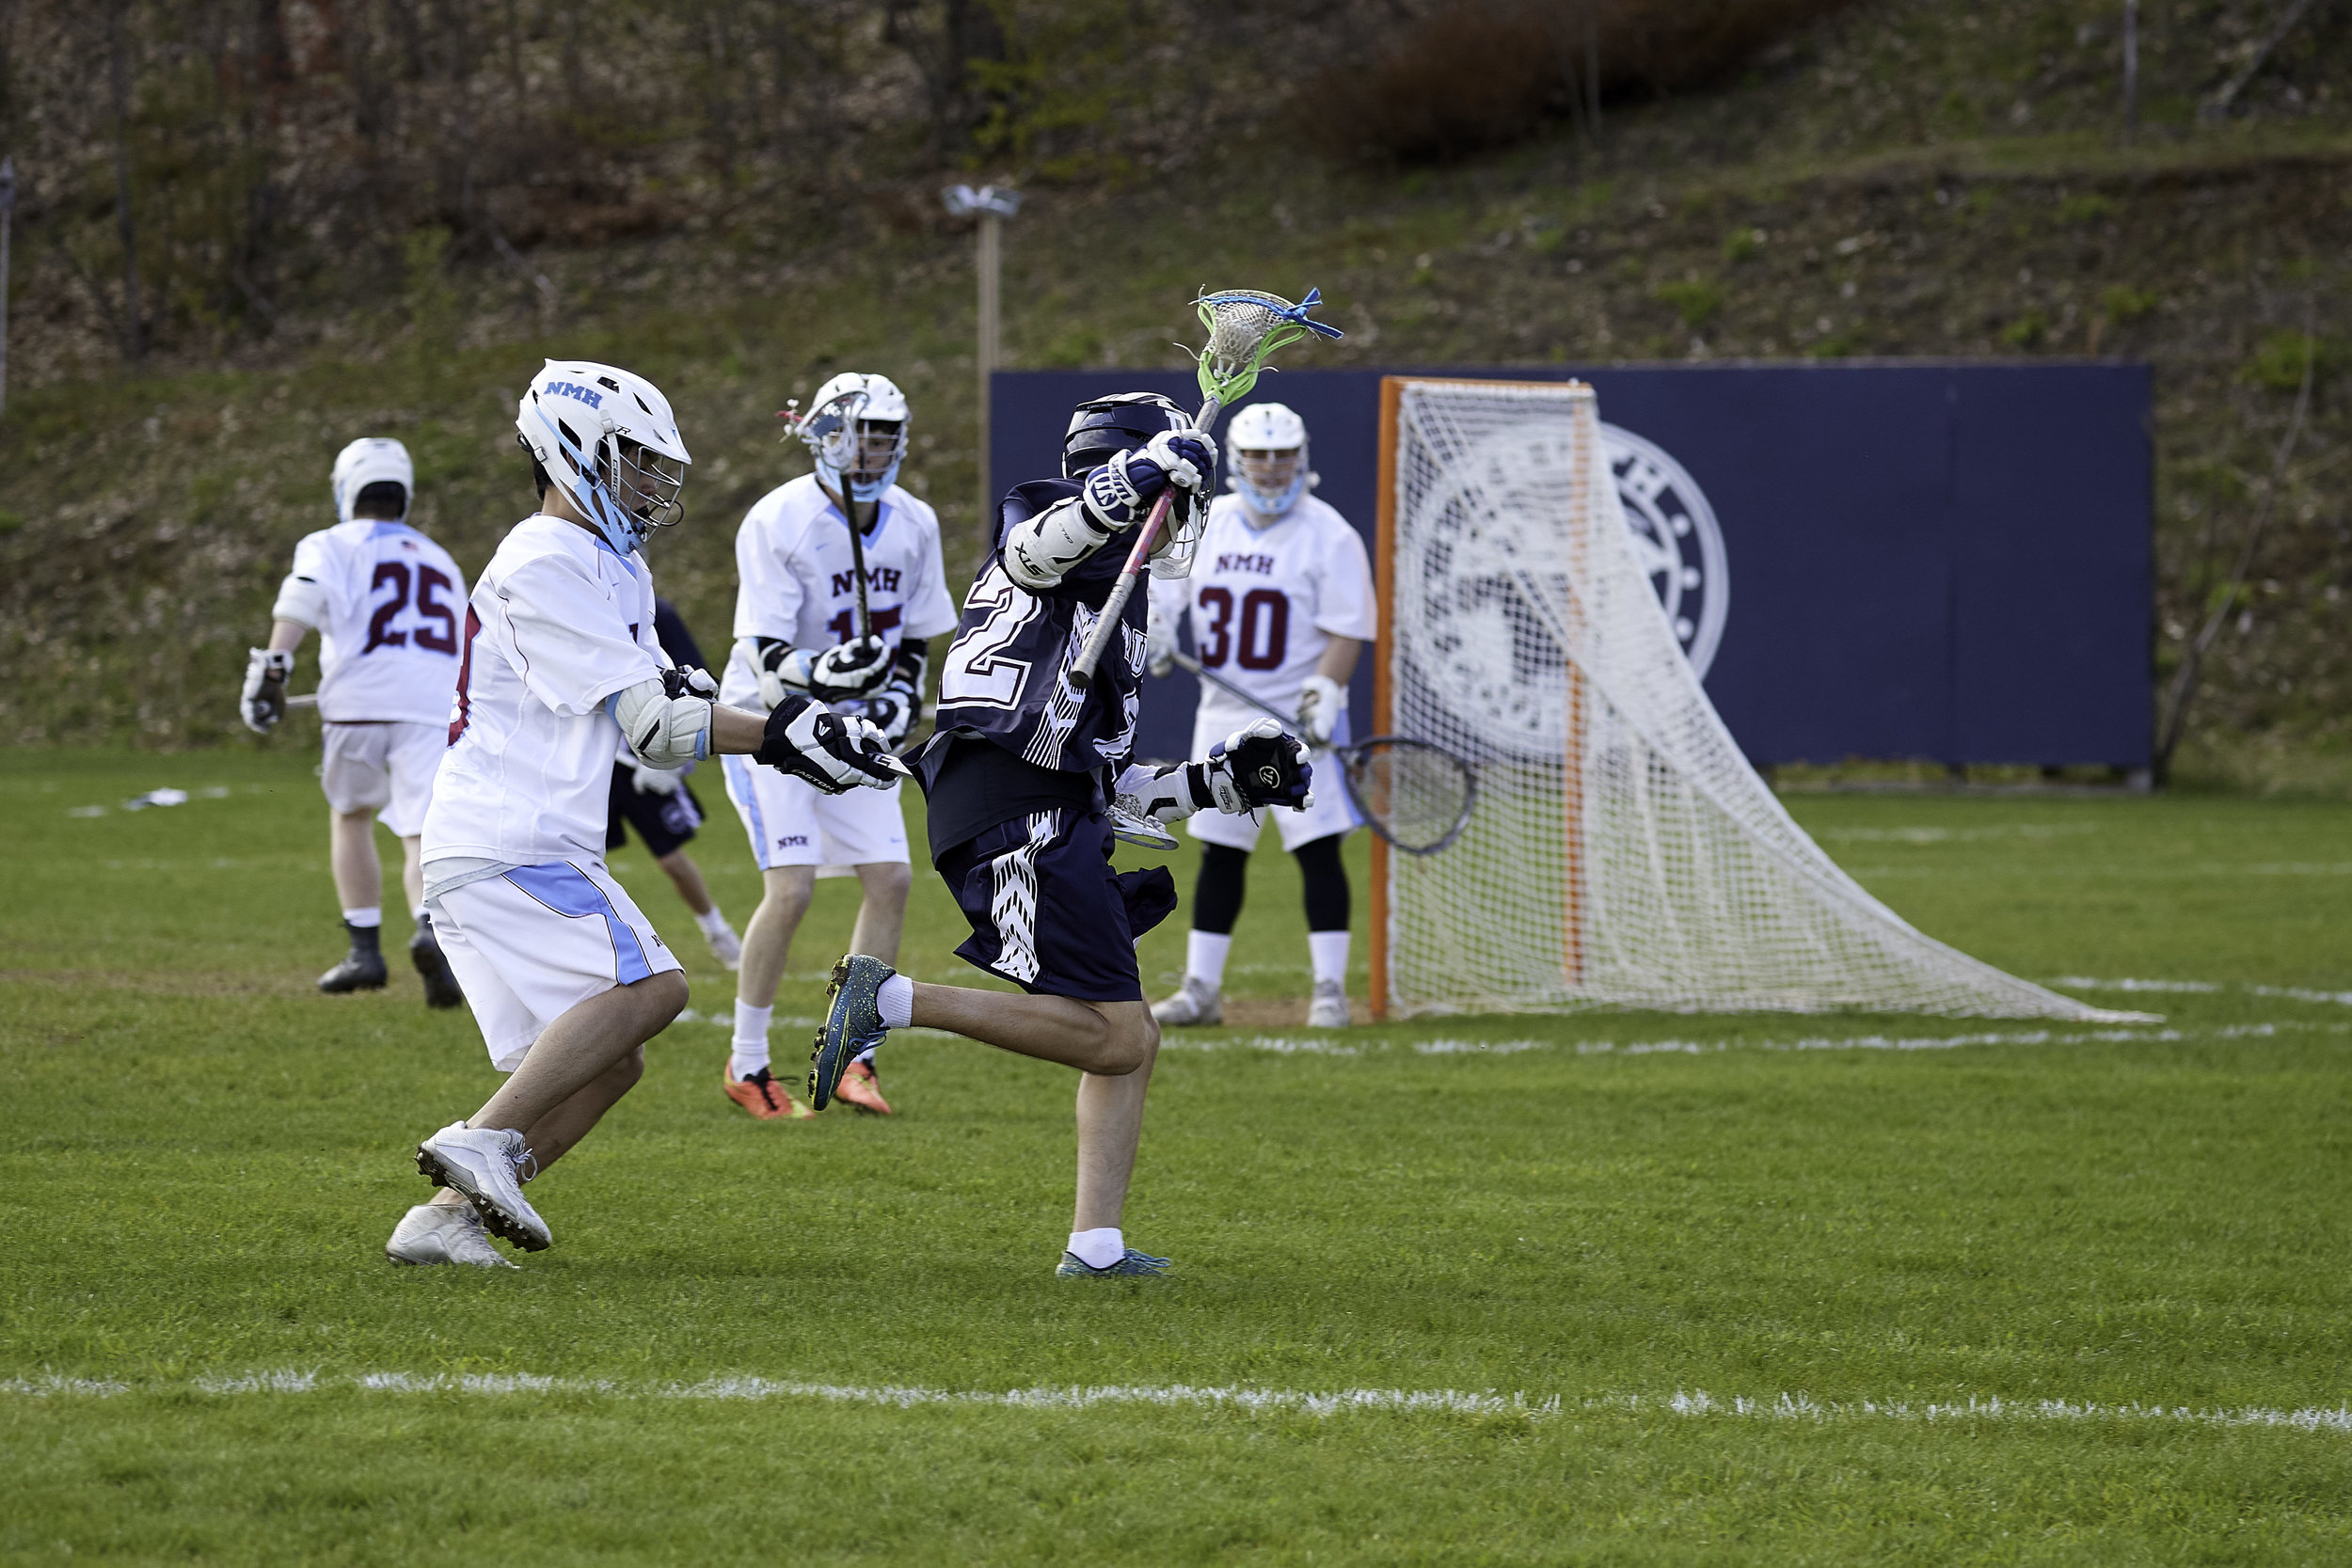 Boys Lax vs Northfield Mount Hermon JV - May 15 2019 - 0001.jpg